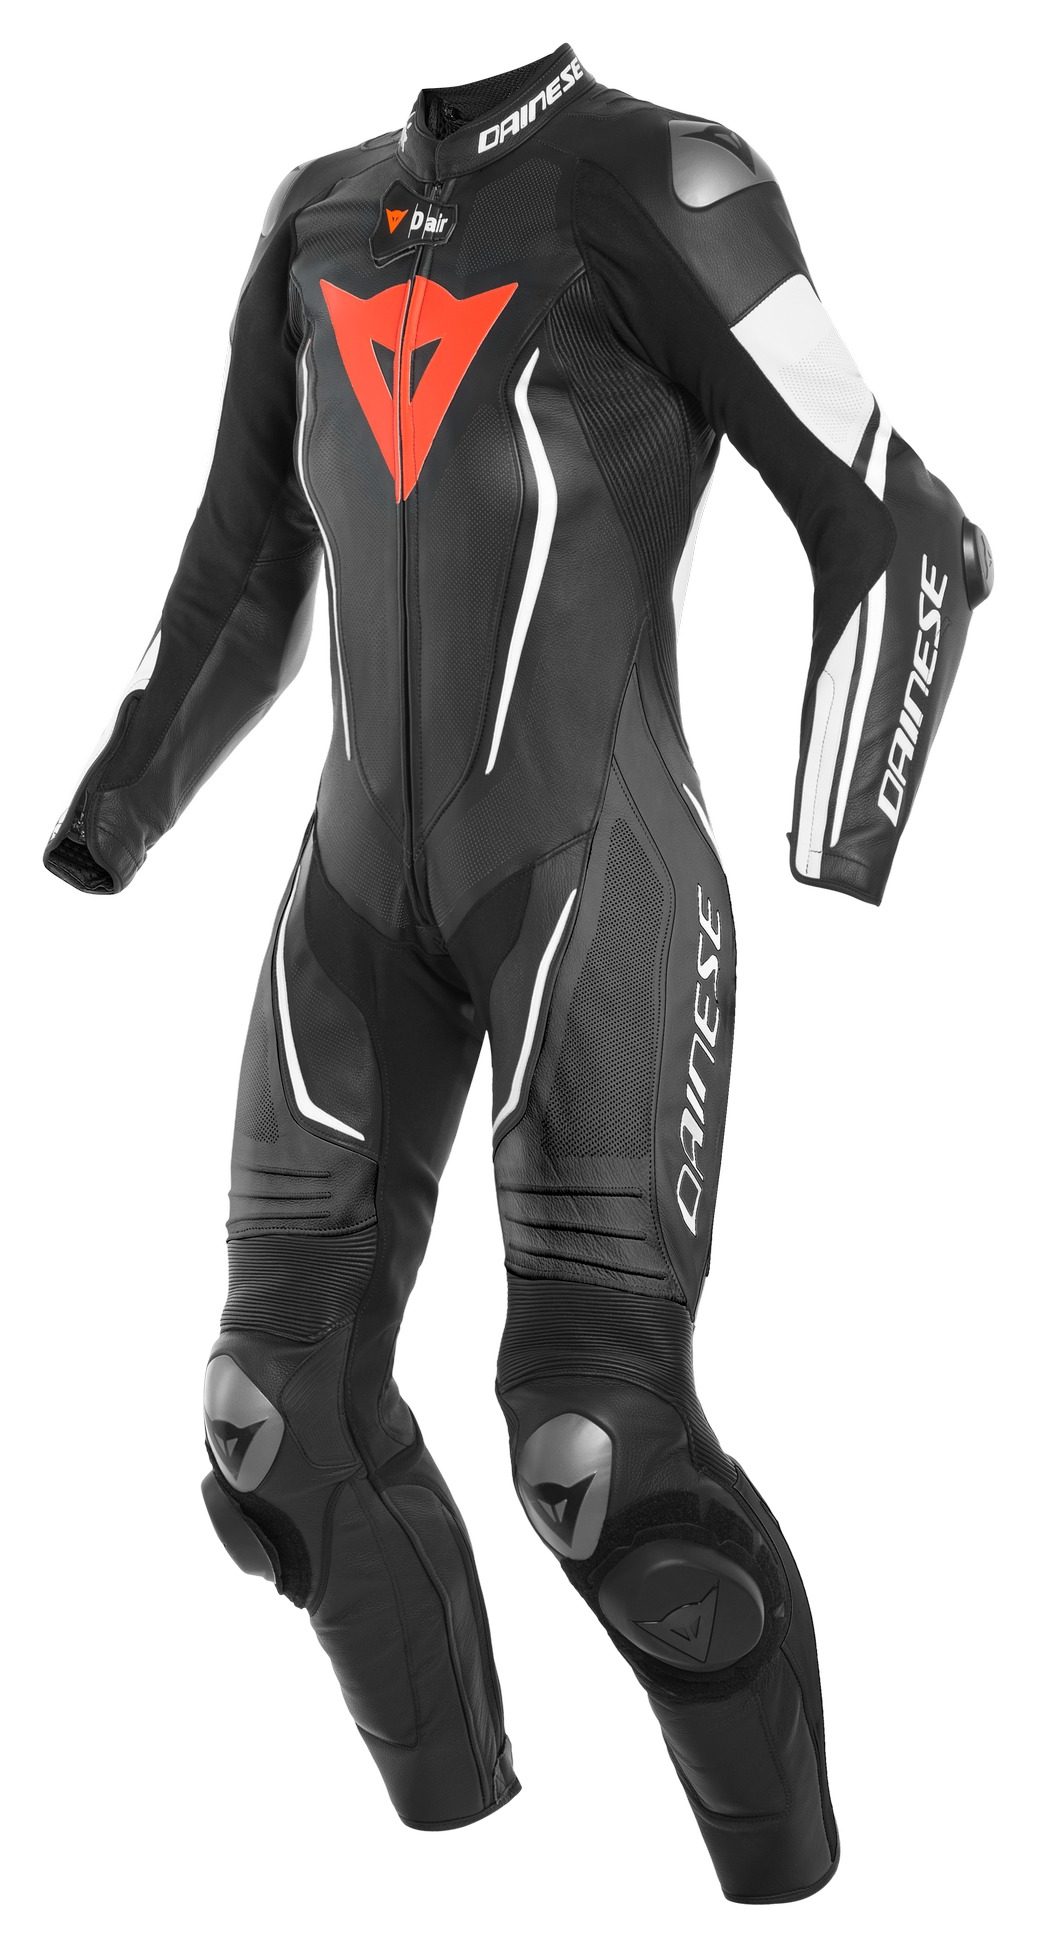 dainese misano 2 d air perforated women 39 s race suit revzilla. Black Bedroom Furniture Sets. Home Design Ideas